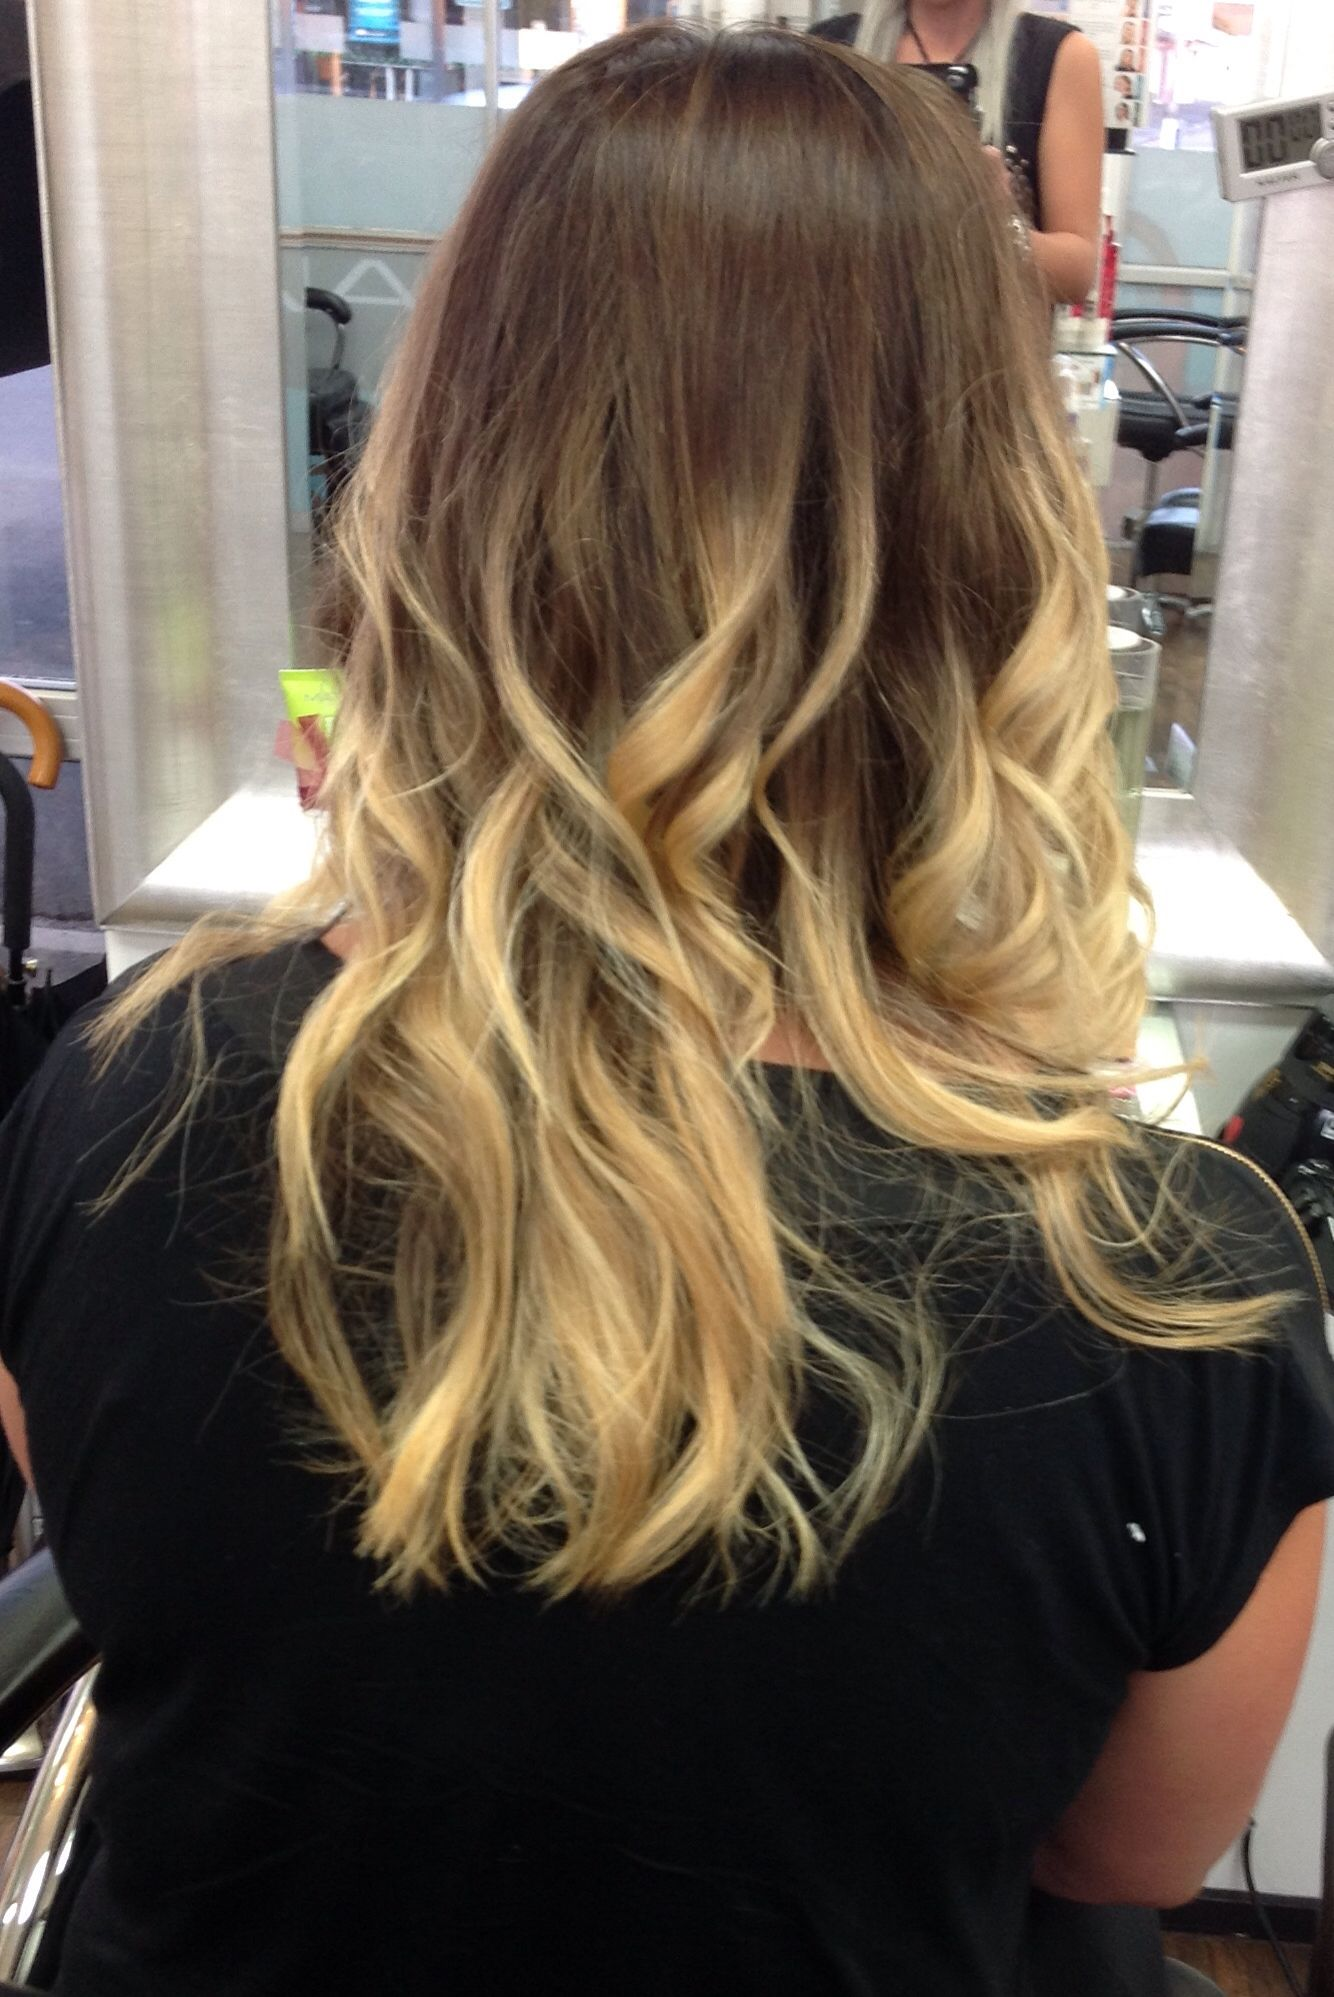 Colouring back full blonde to Chocolate / Blonde Ombré | Colour ...